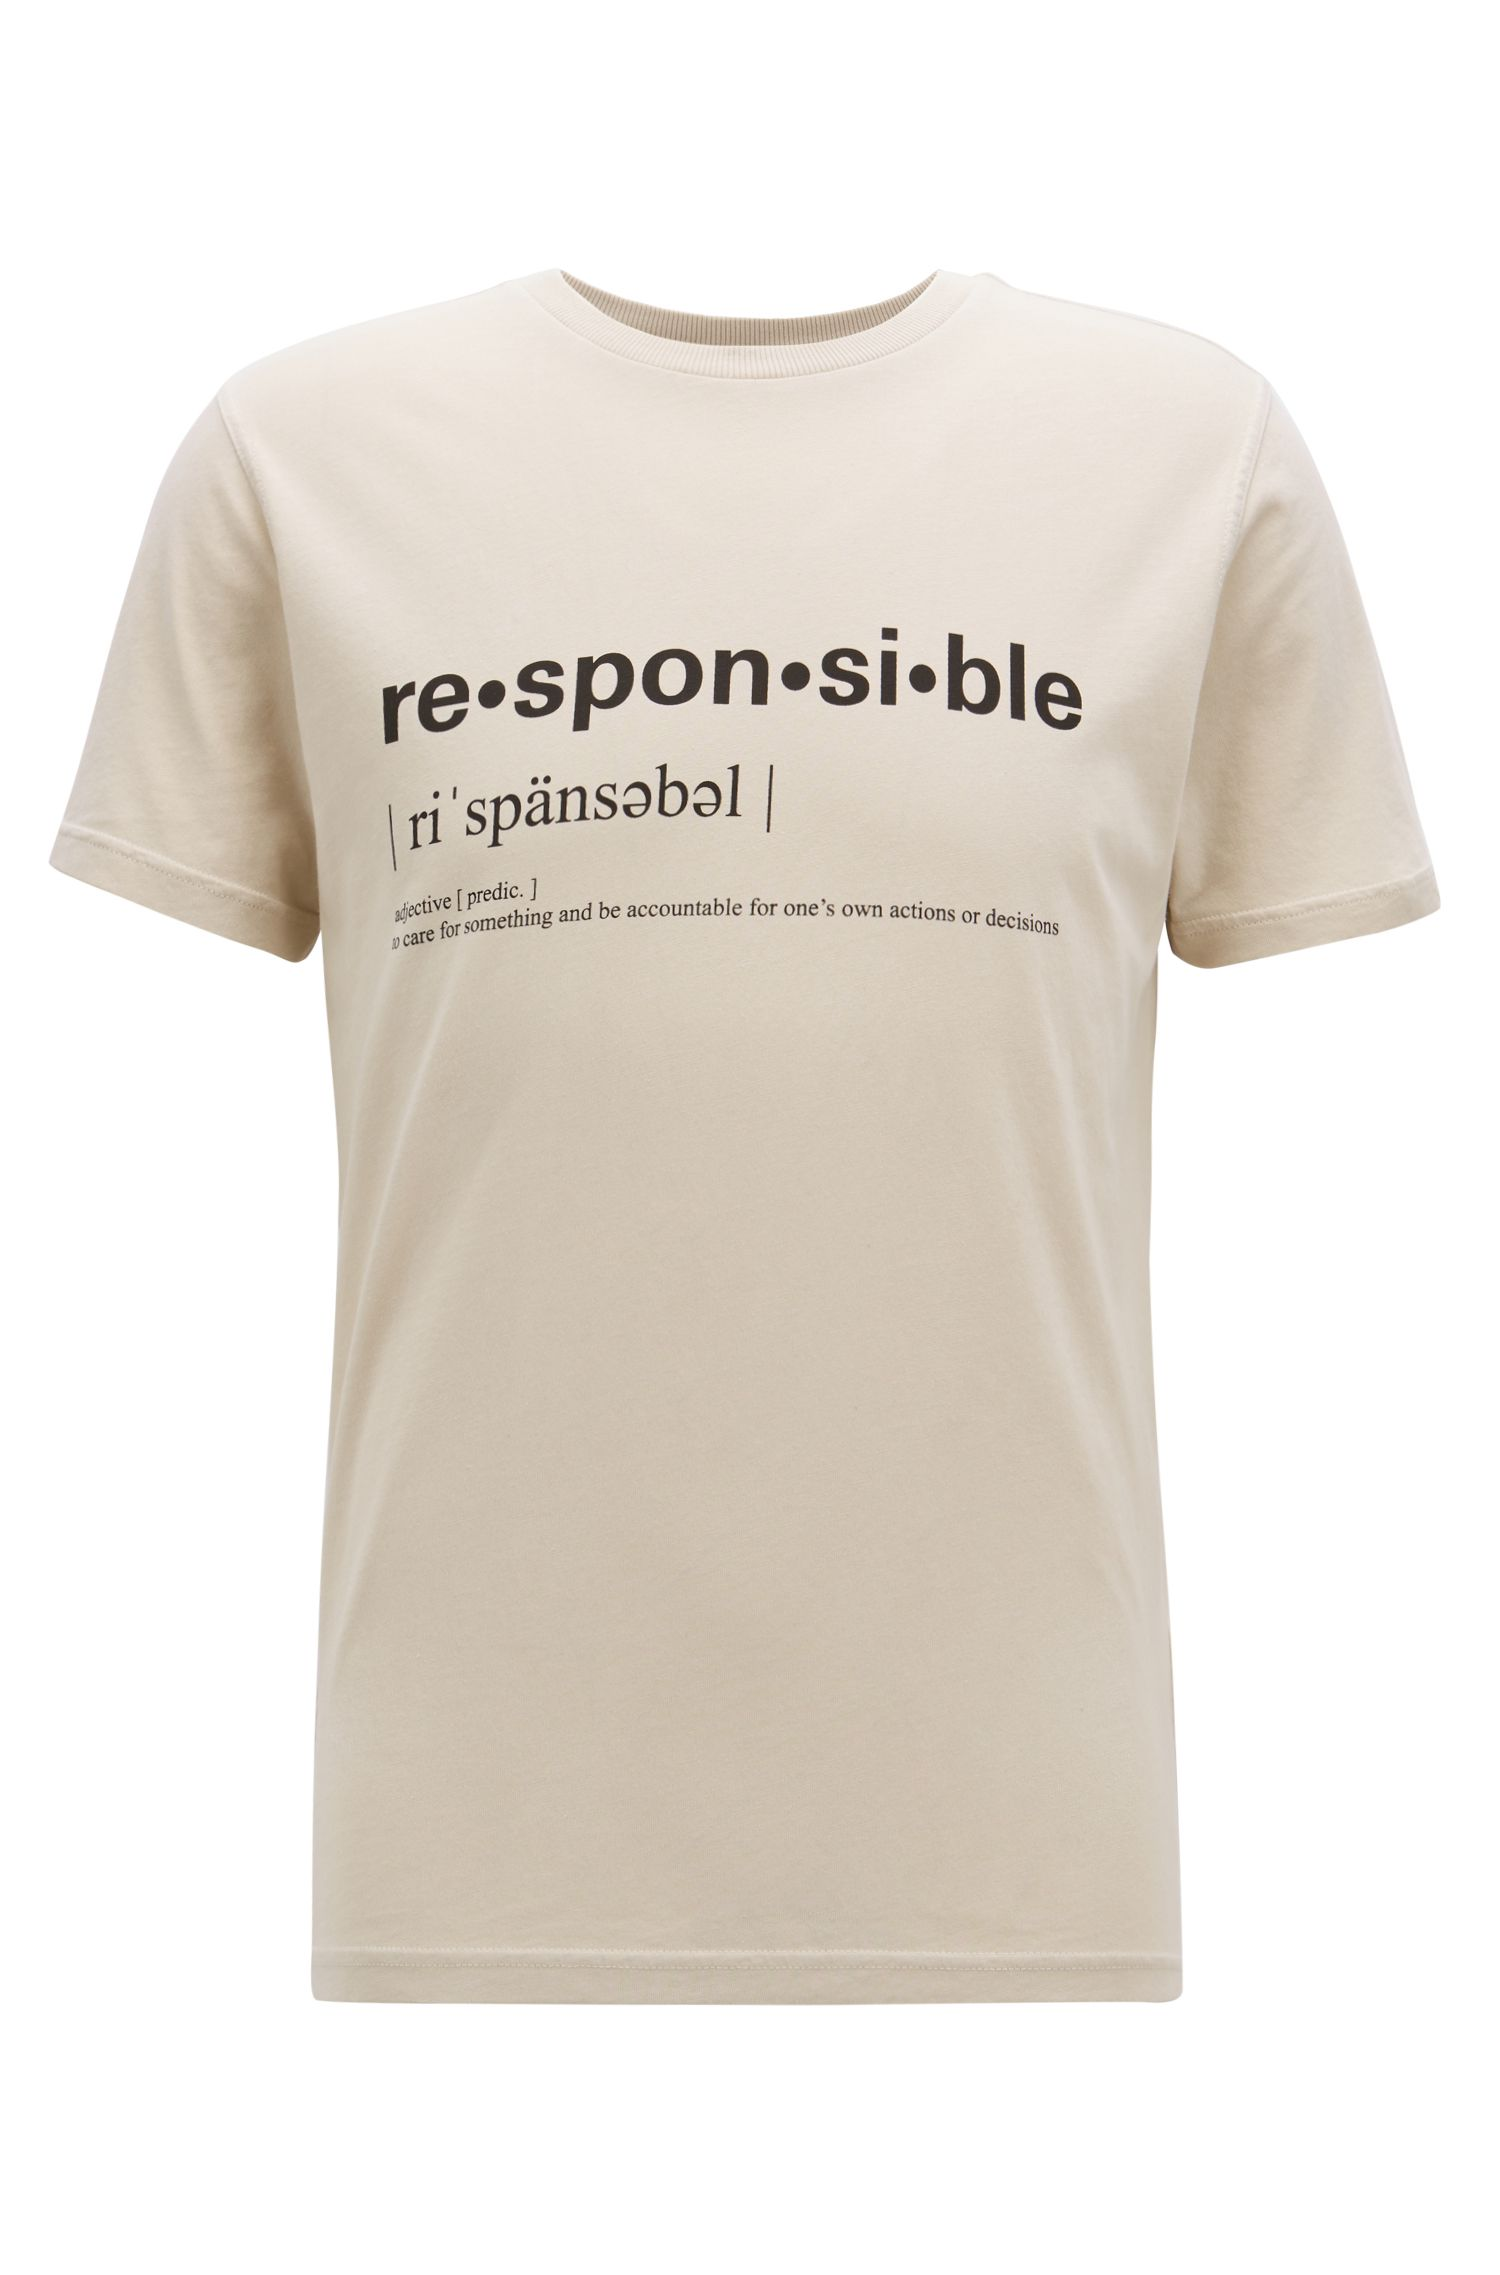 Relaxed-Fit T-Shirt aus recot²® Single Jersey mit Slogan, Beige